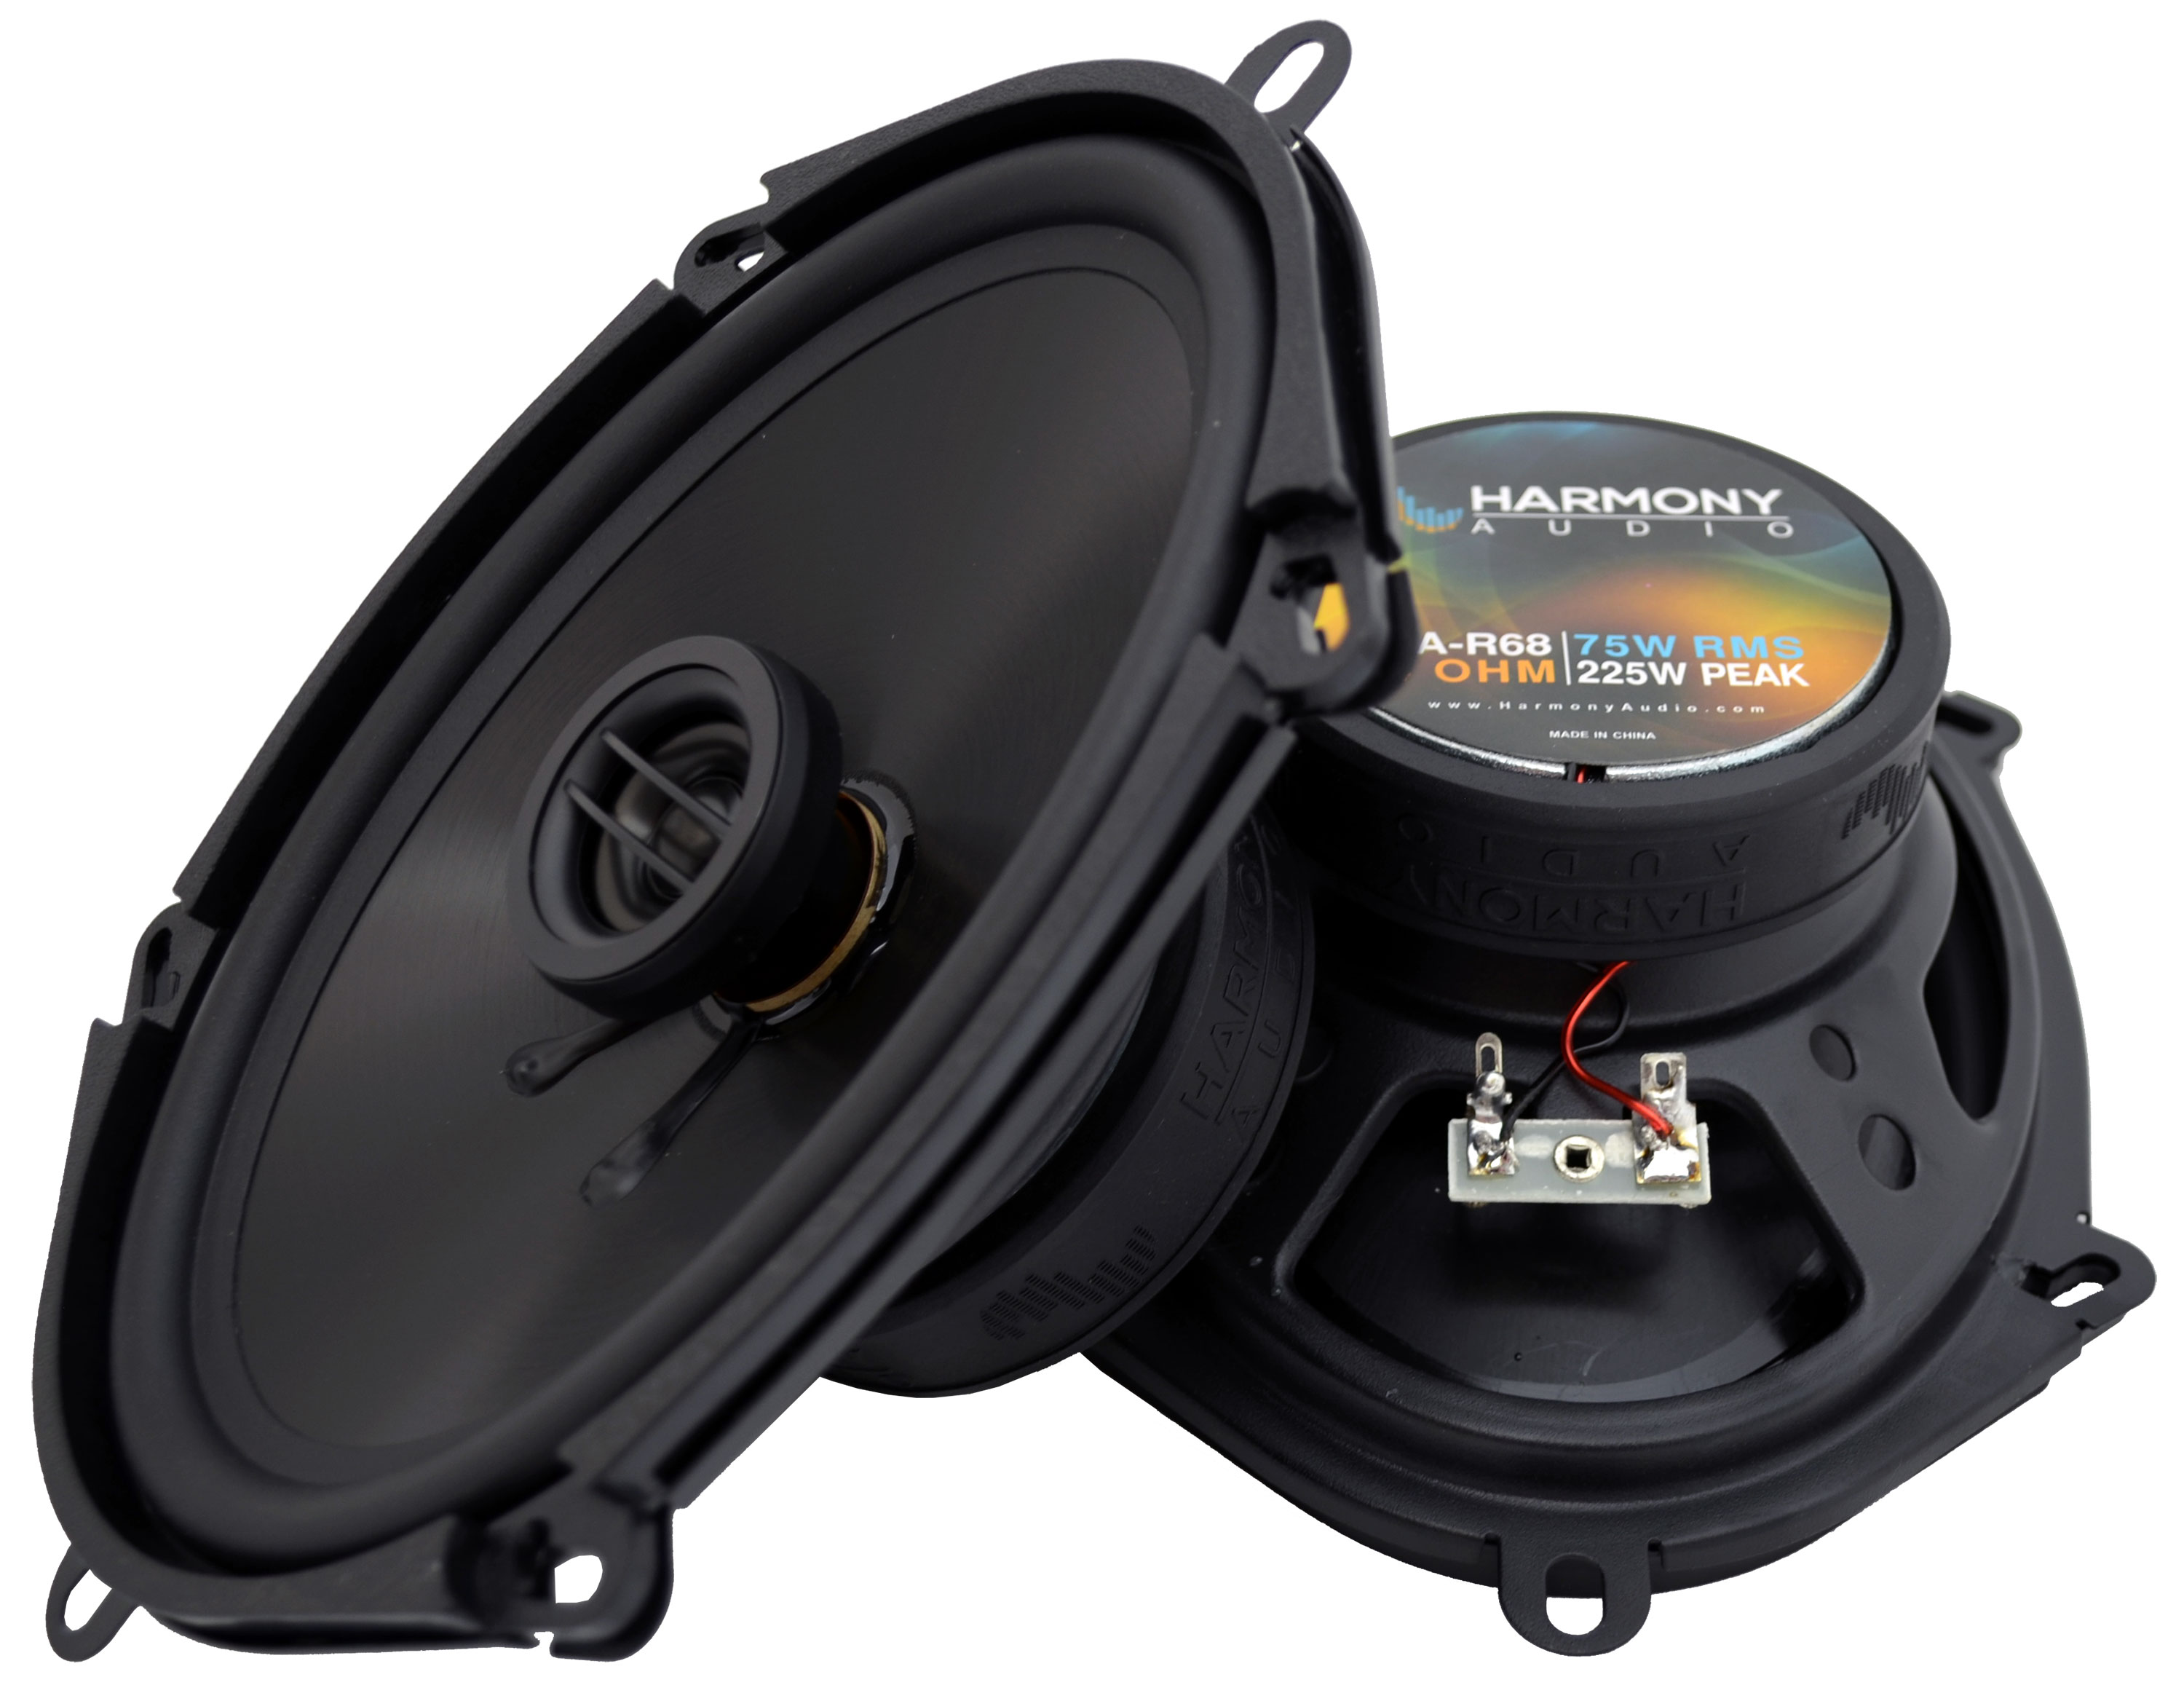 Fits BMW M5 1991-1993 Rear Deck Replacement Speaker Harmony HA-R68 Speakers New